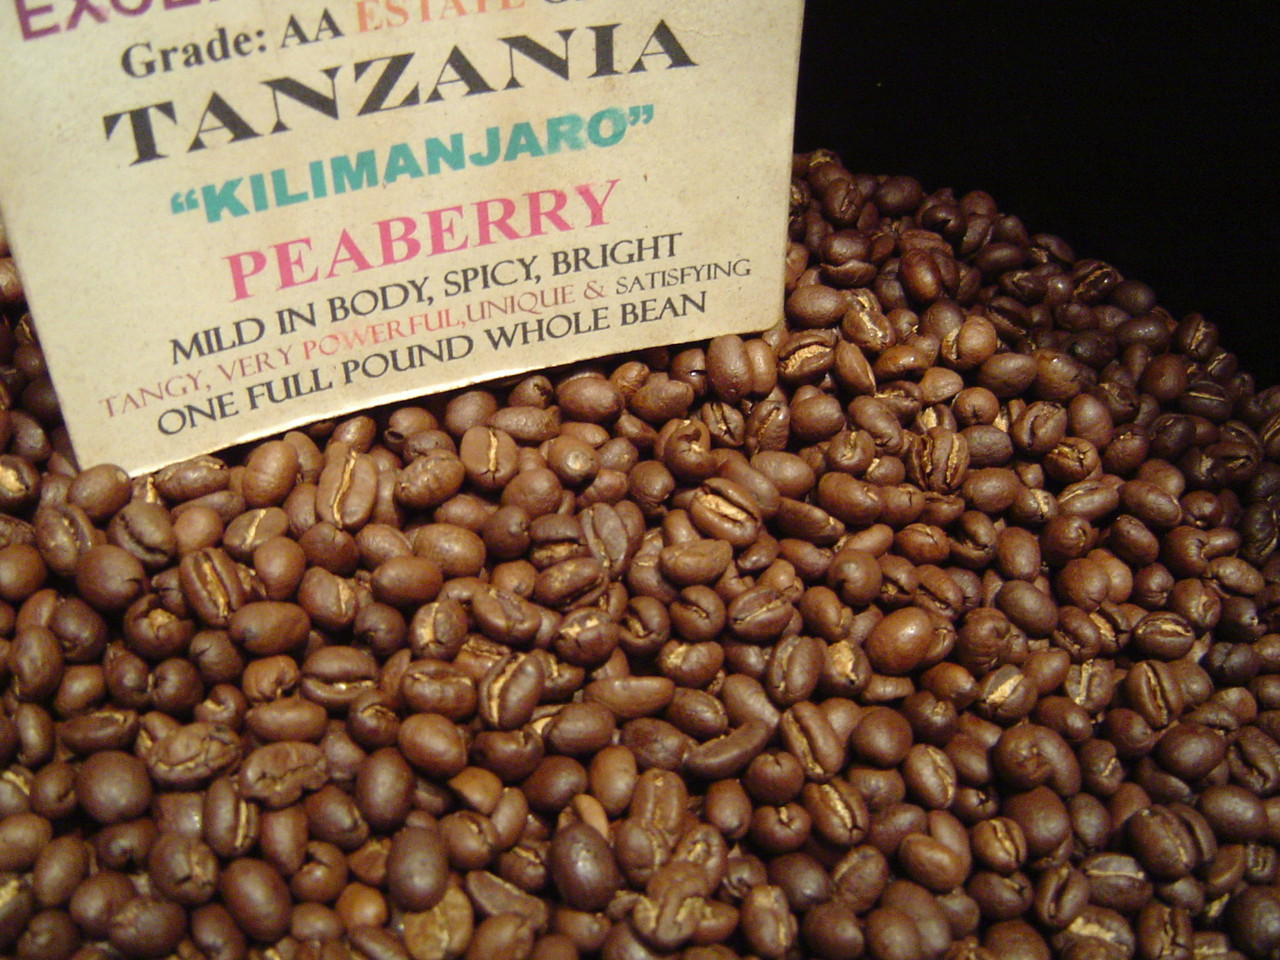 What Is Peaberry Coffee?